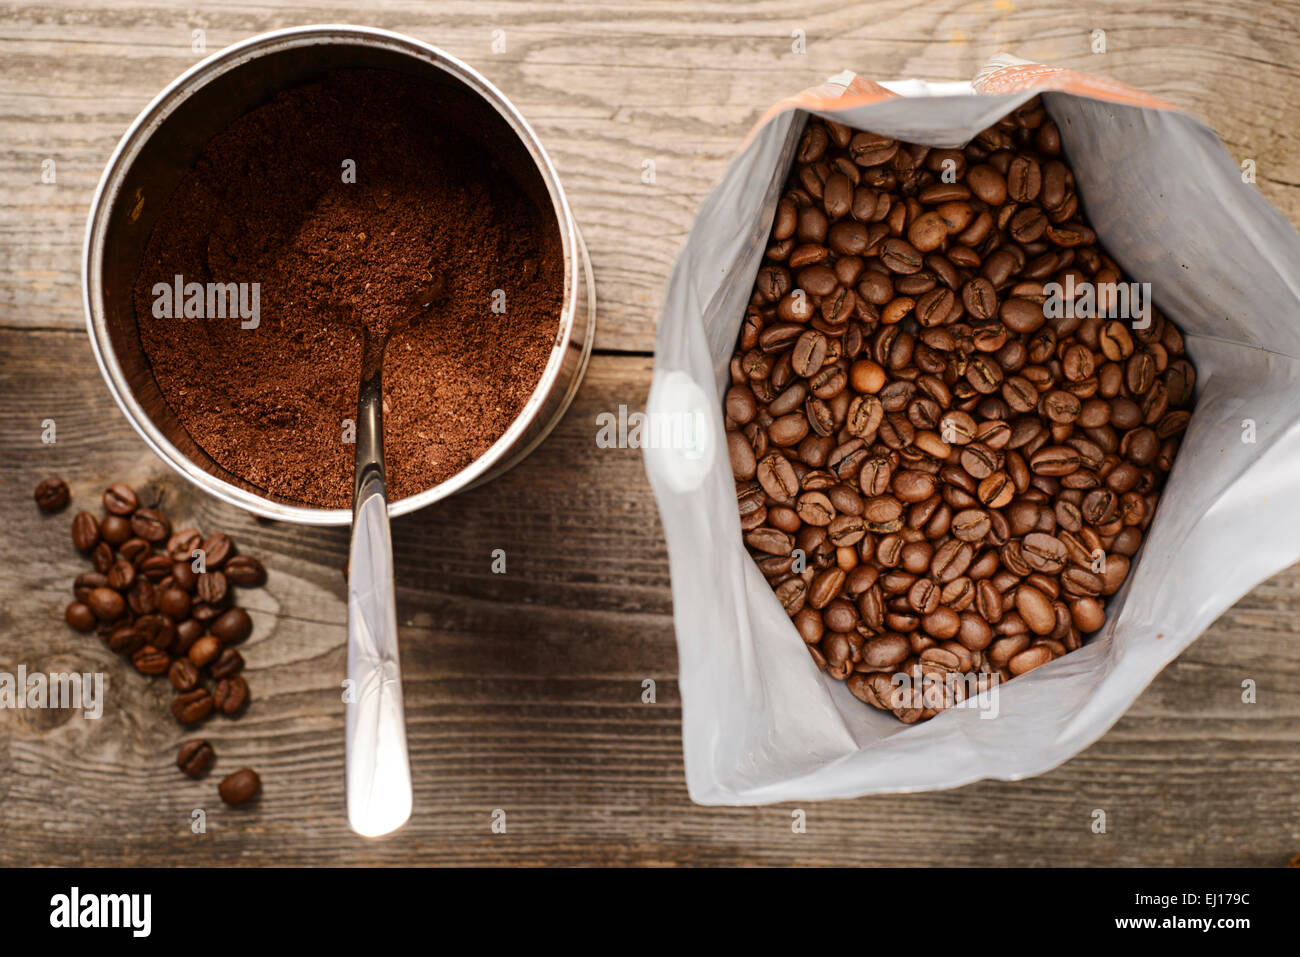 ground coffee stock photo - photo #3